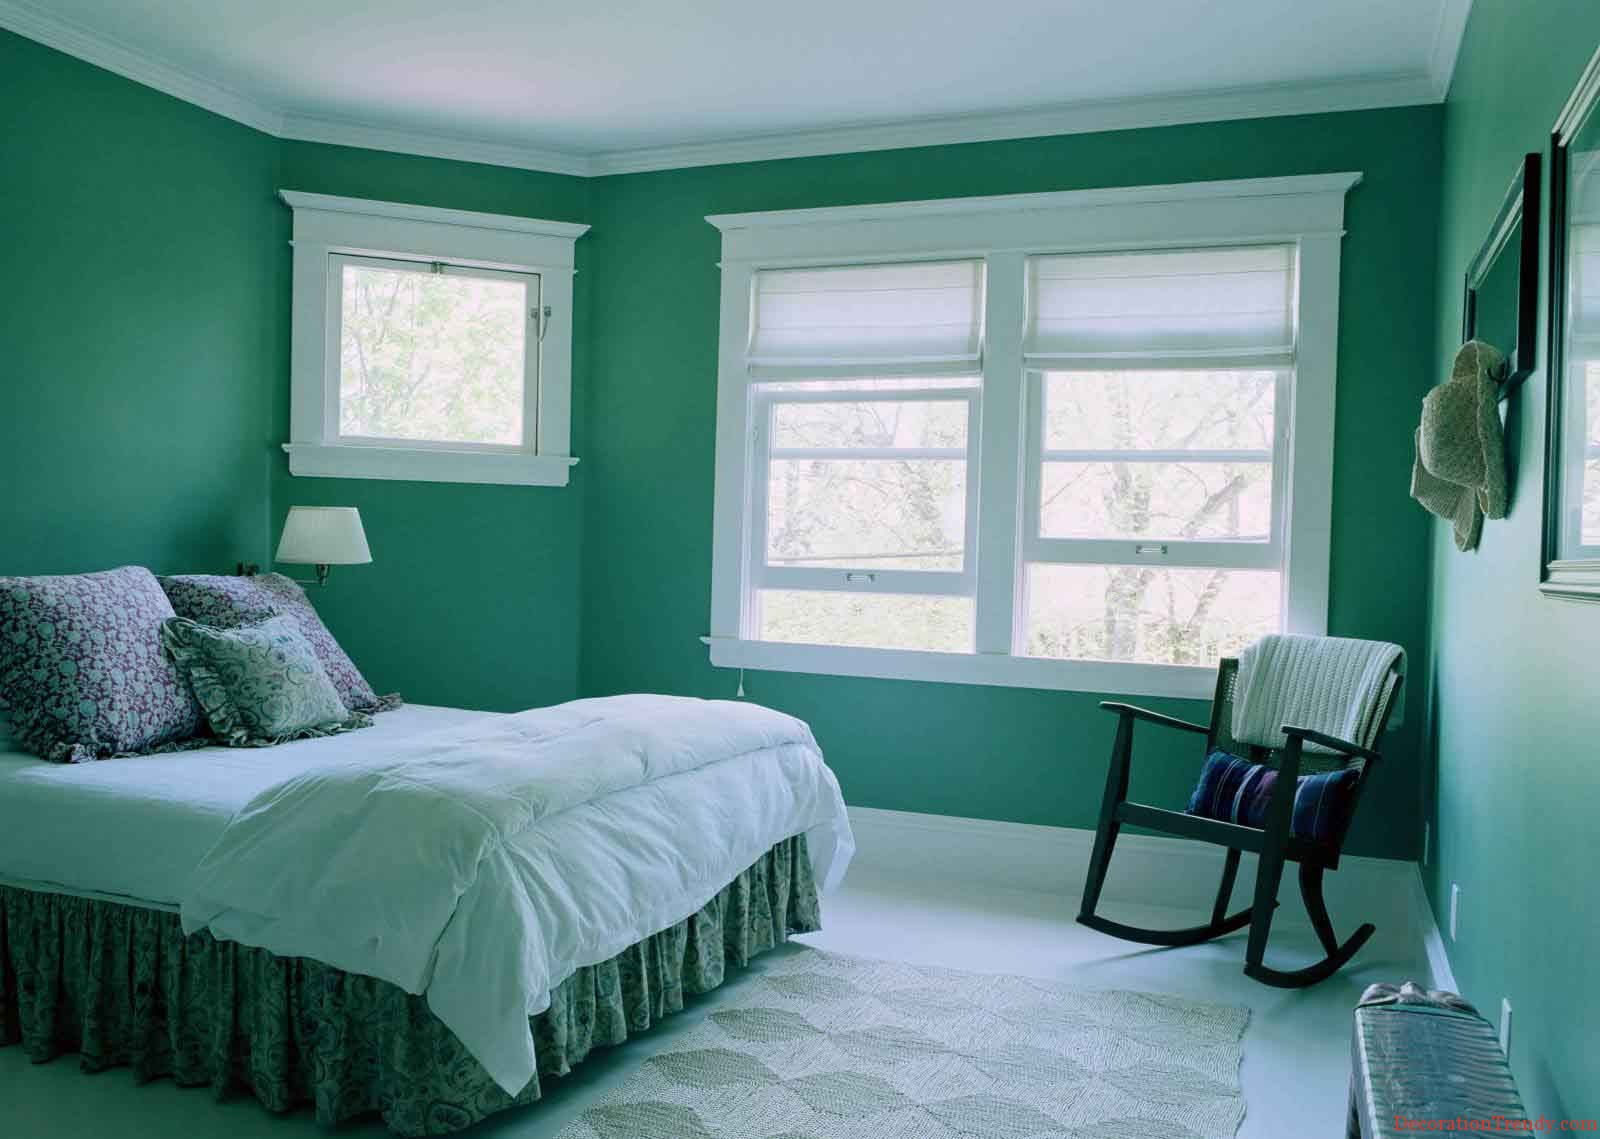 Simple Bedroom Colors and Idea | Decoration Designs Guide